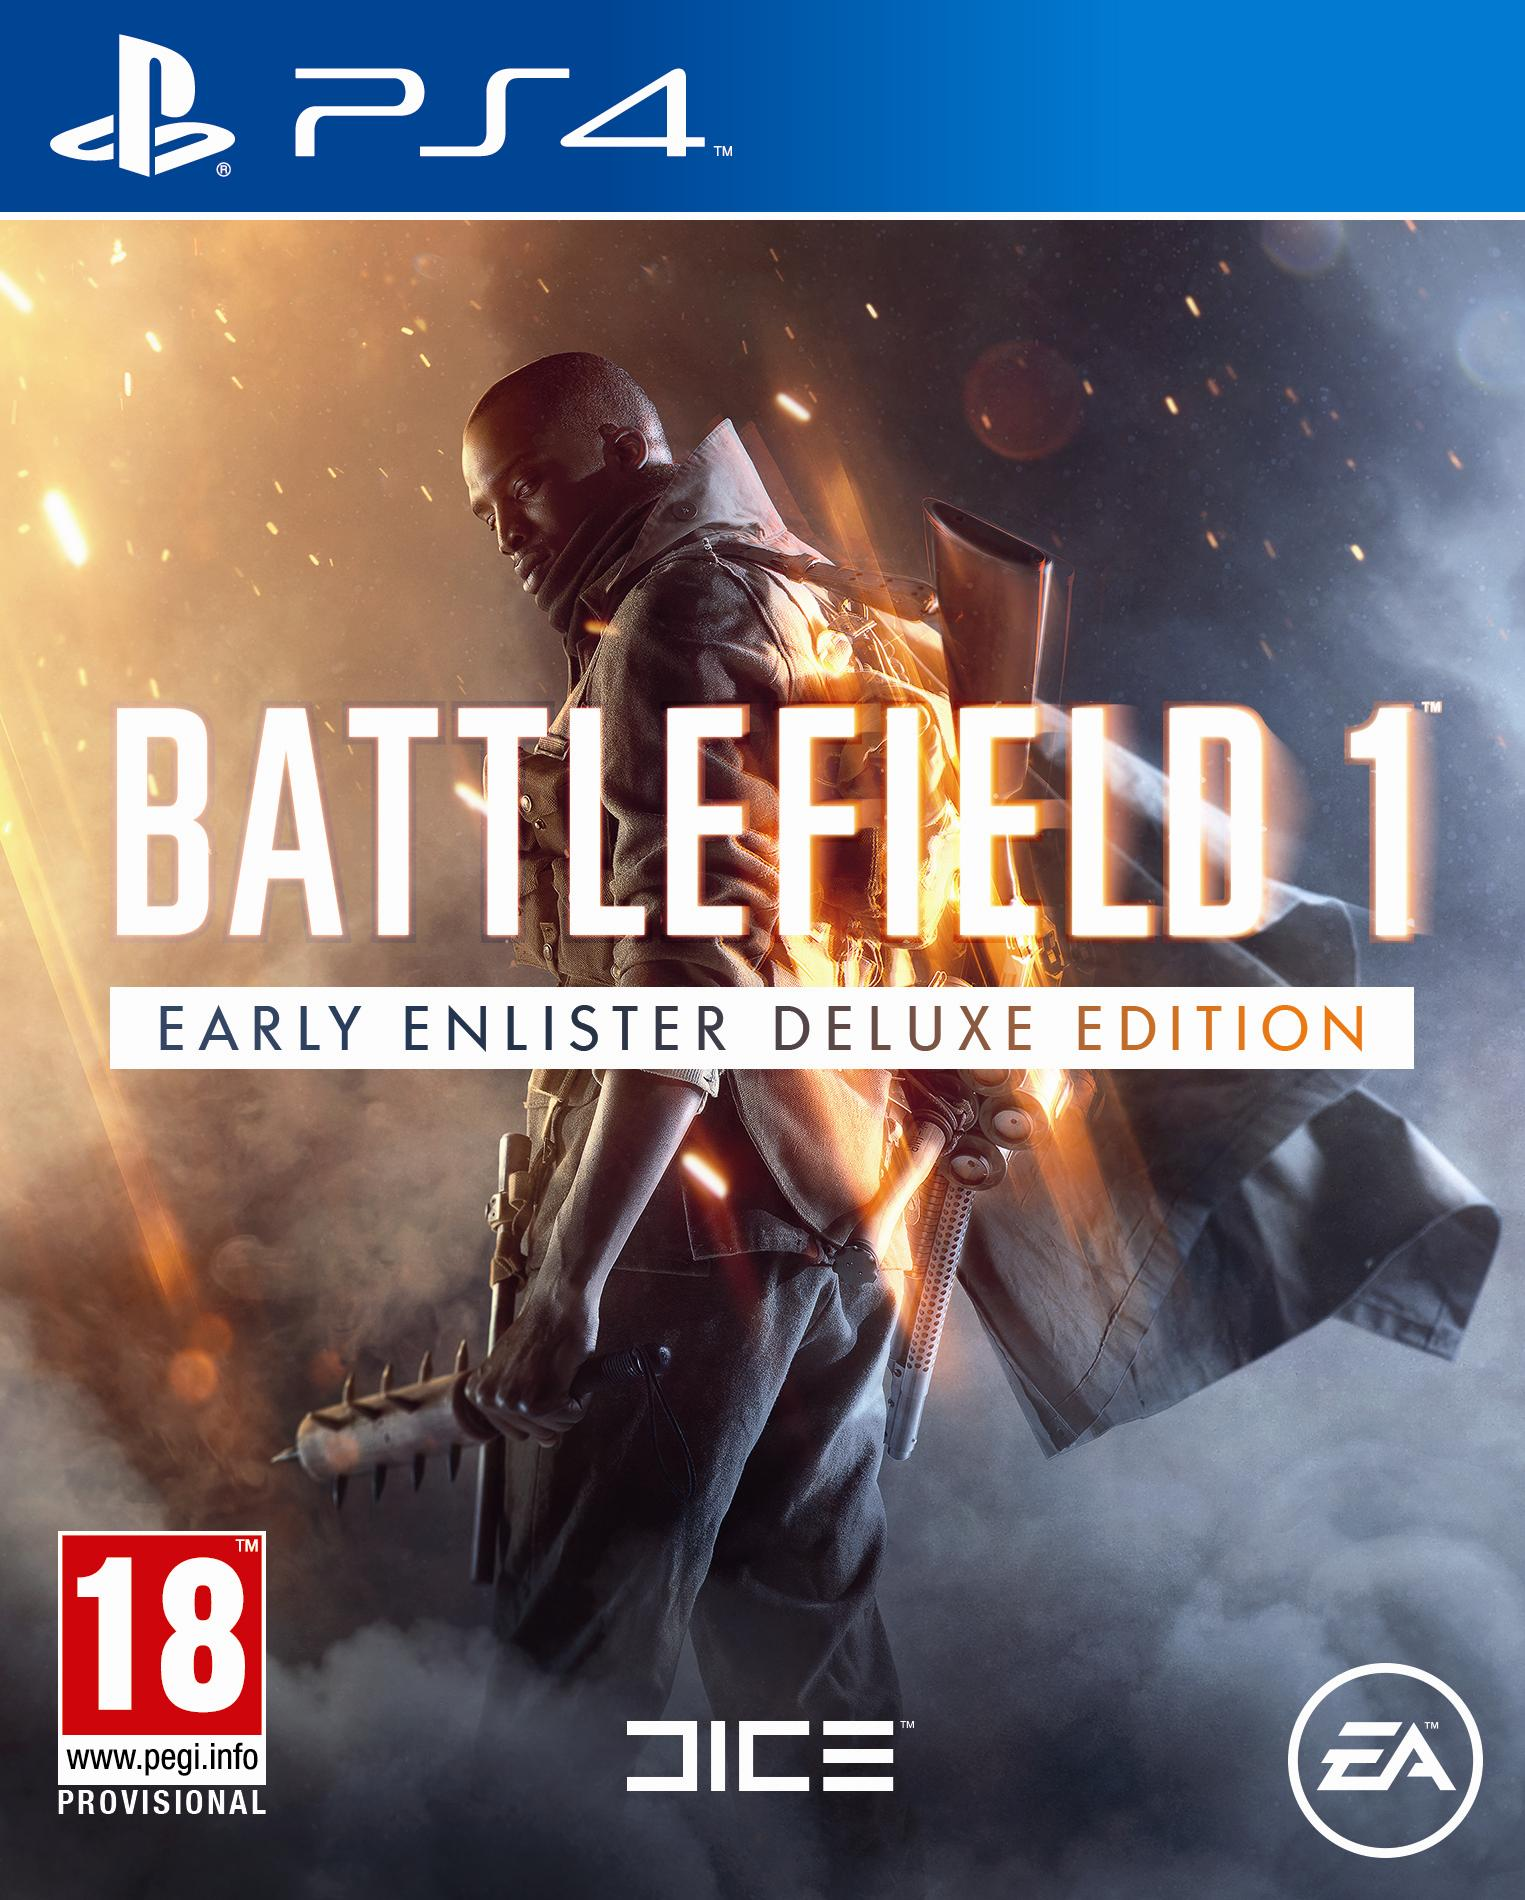 Battlefield 1 – News, Reviews, Videos, and More